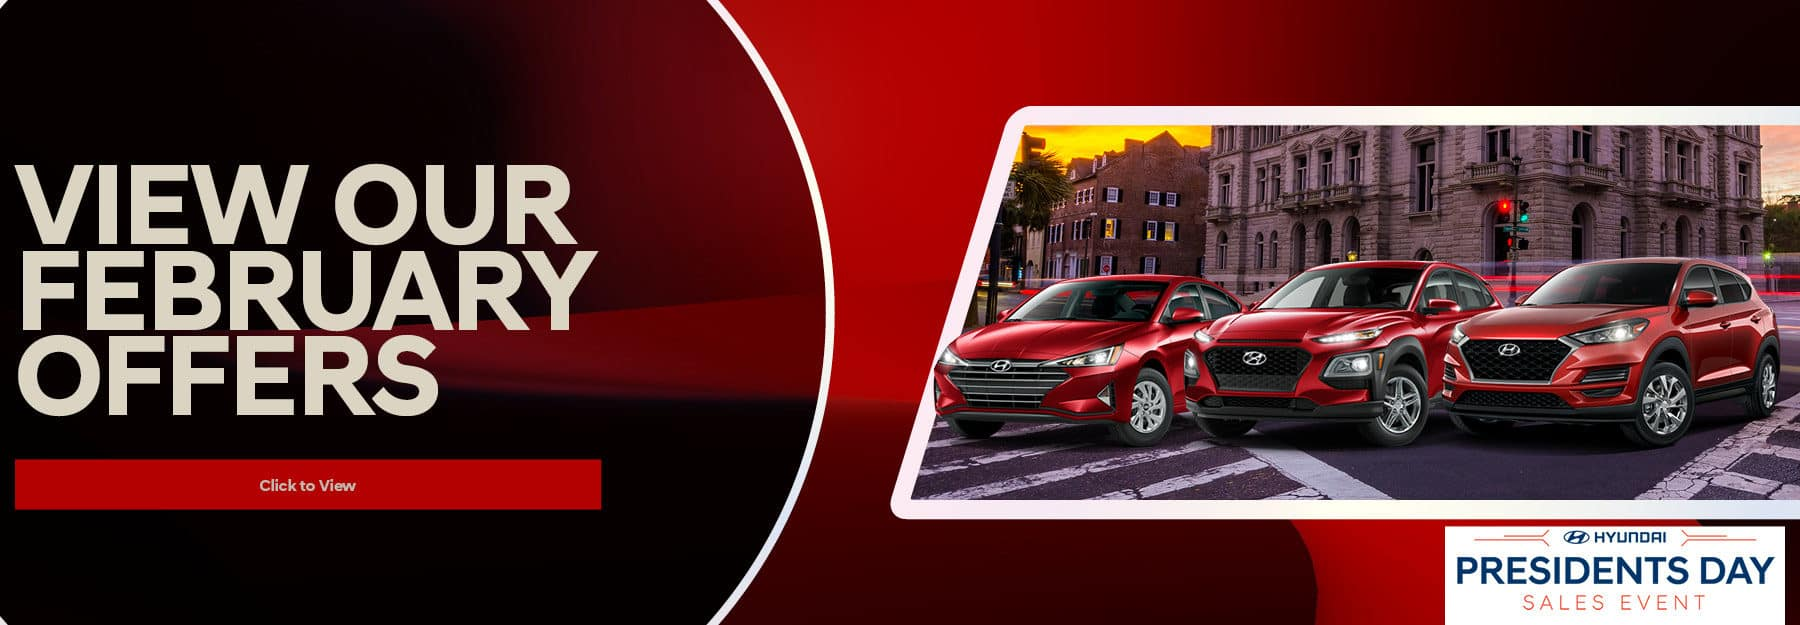 View Our February Offers at Patrick Hyundai in Schaumburg, IL today!